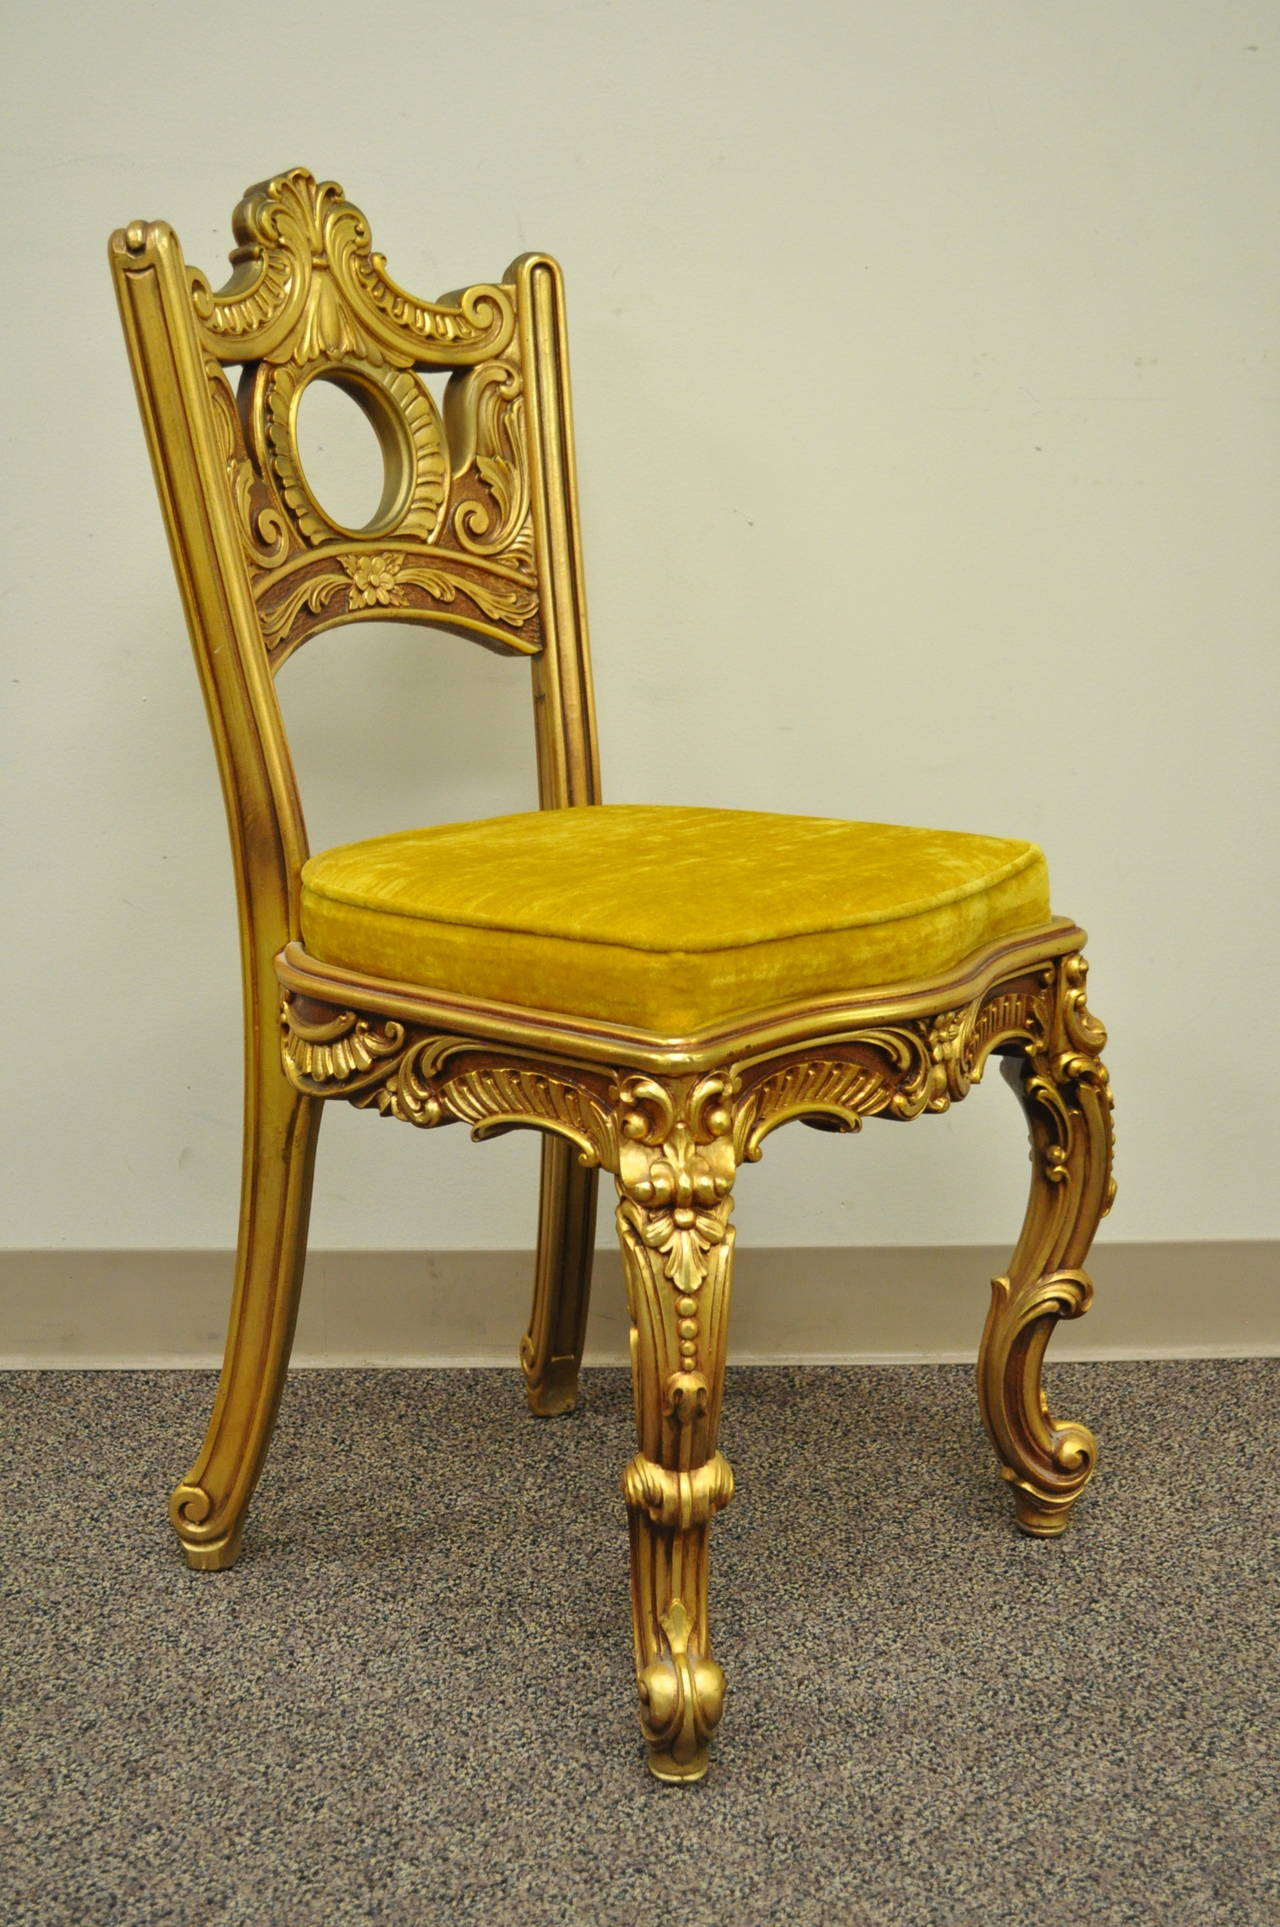 French baroque furniture - French Baroque Style Gold Gilt Vanity Or Desk With Chair Attr To Roma Furniture 3